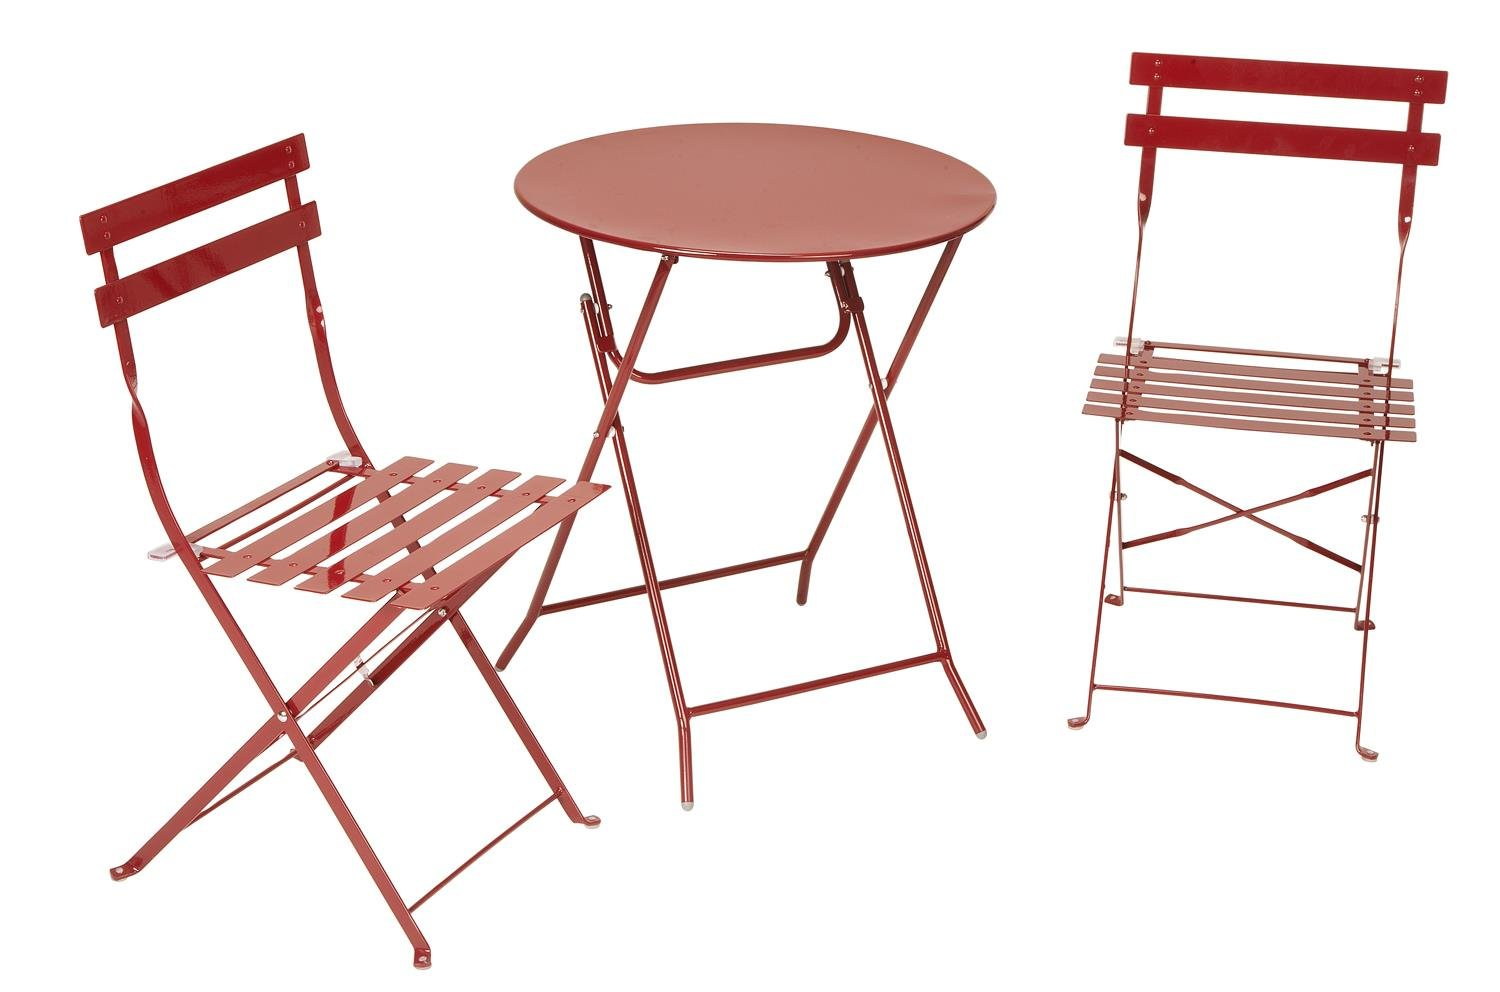 Delicieux Amazon.com: Cosco Outdoor Bistro Set, 3 Piece, Folding, Red: Garden U0026  Outdoor